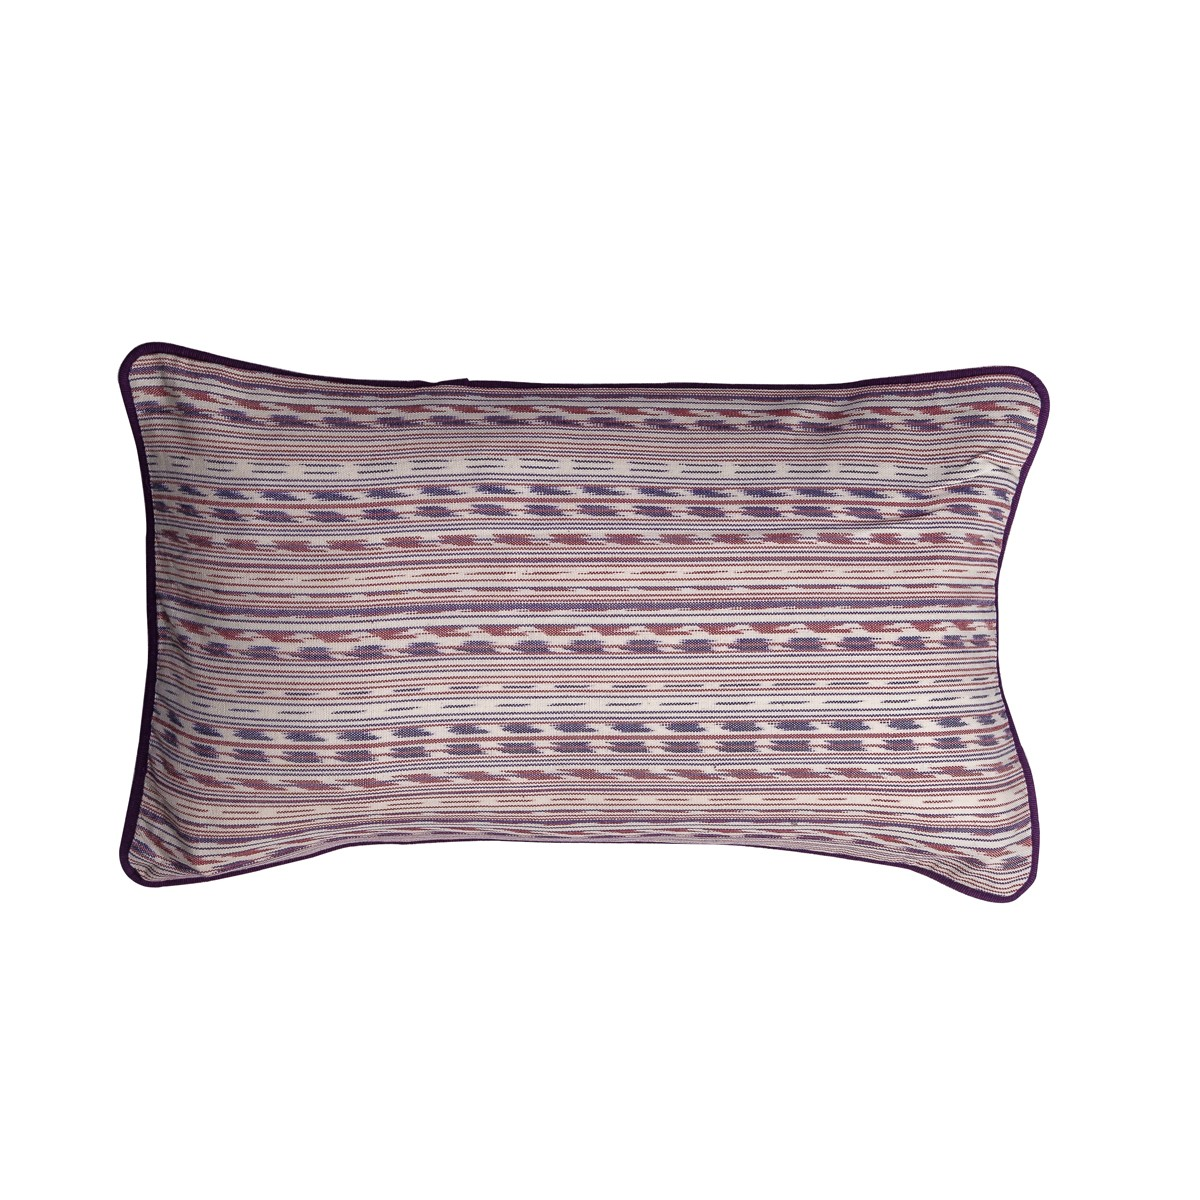 Single Purple Patterned Rectangle Cushion Cover with Piping